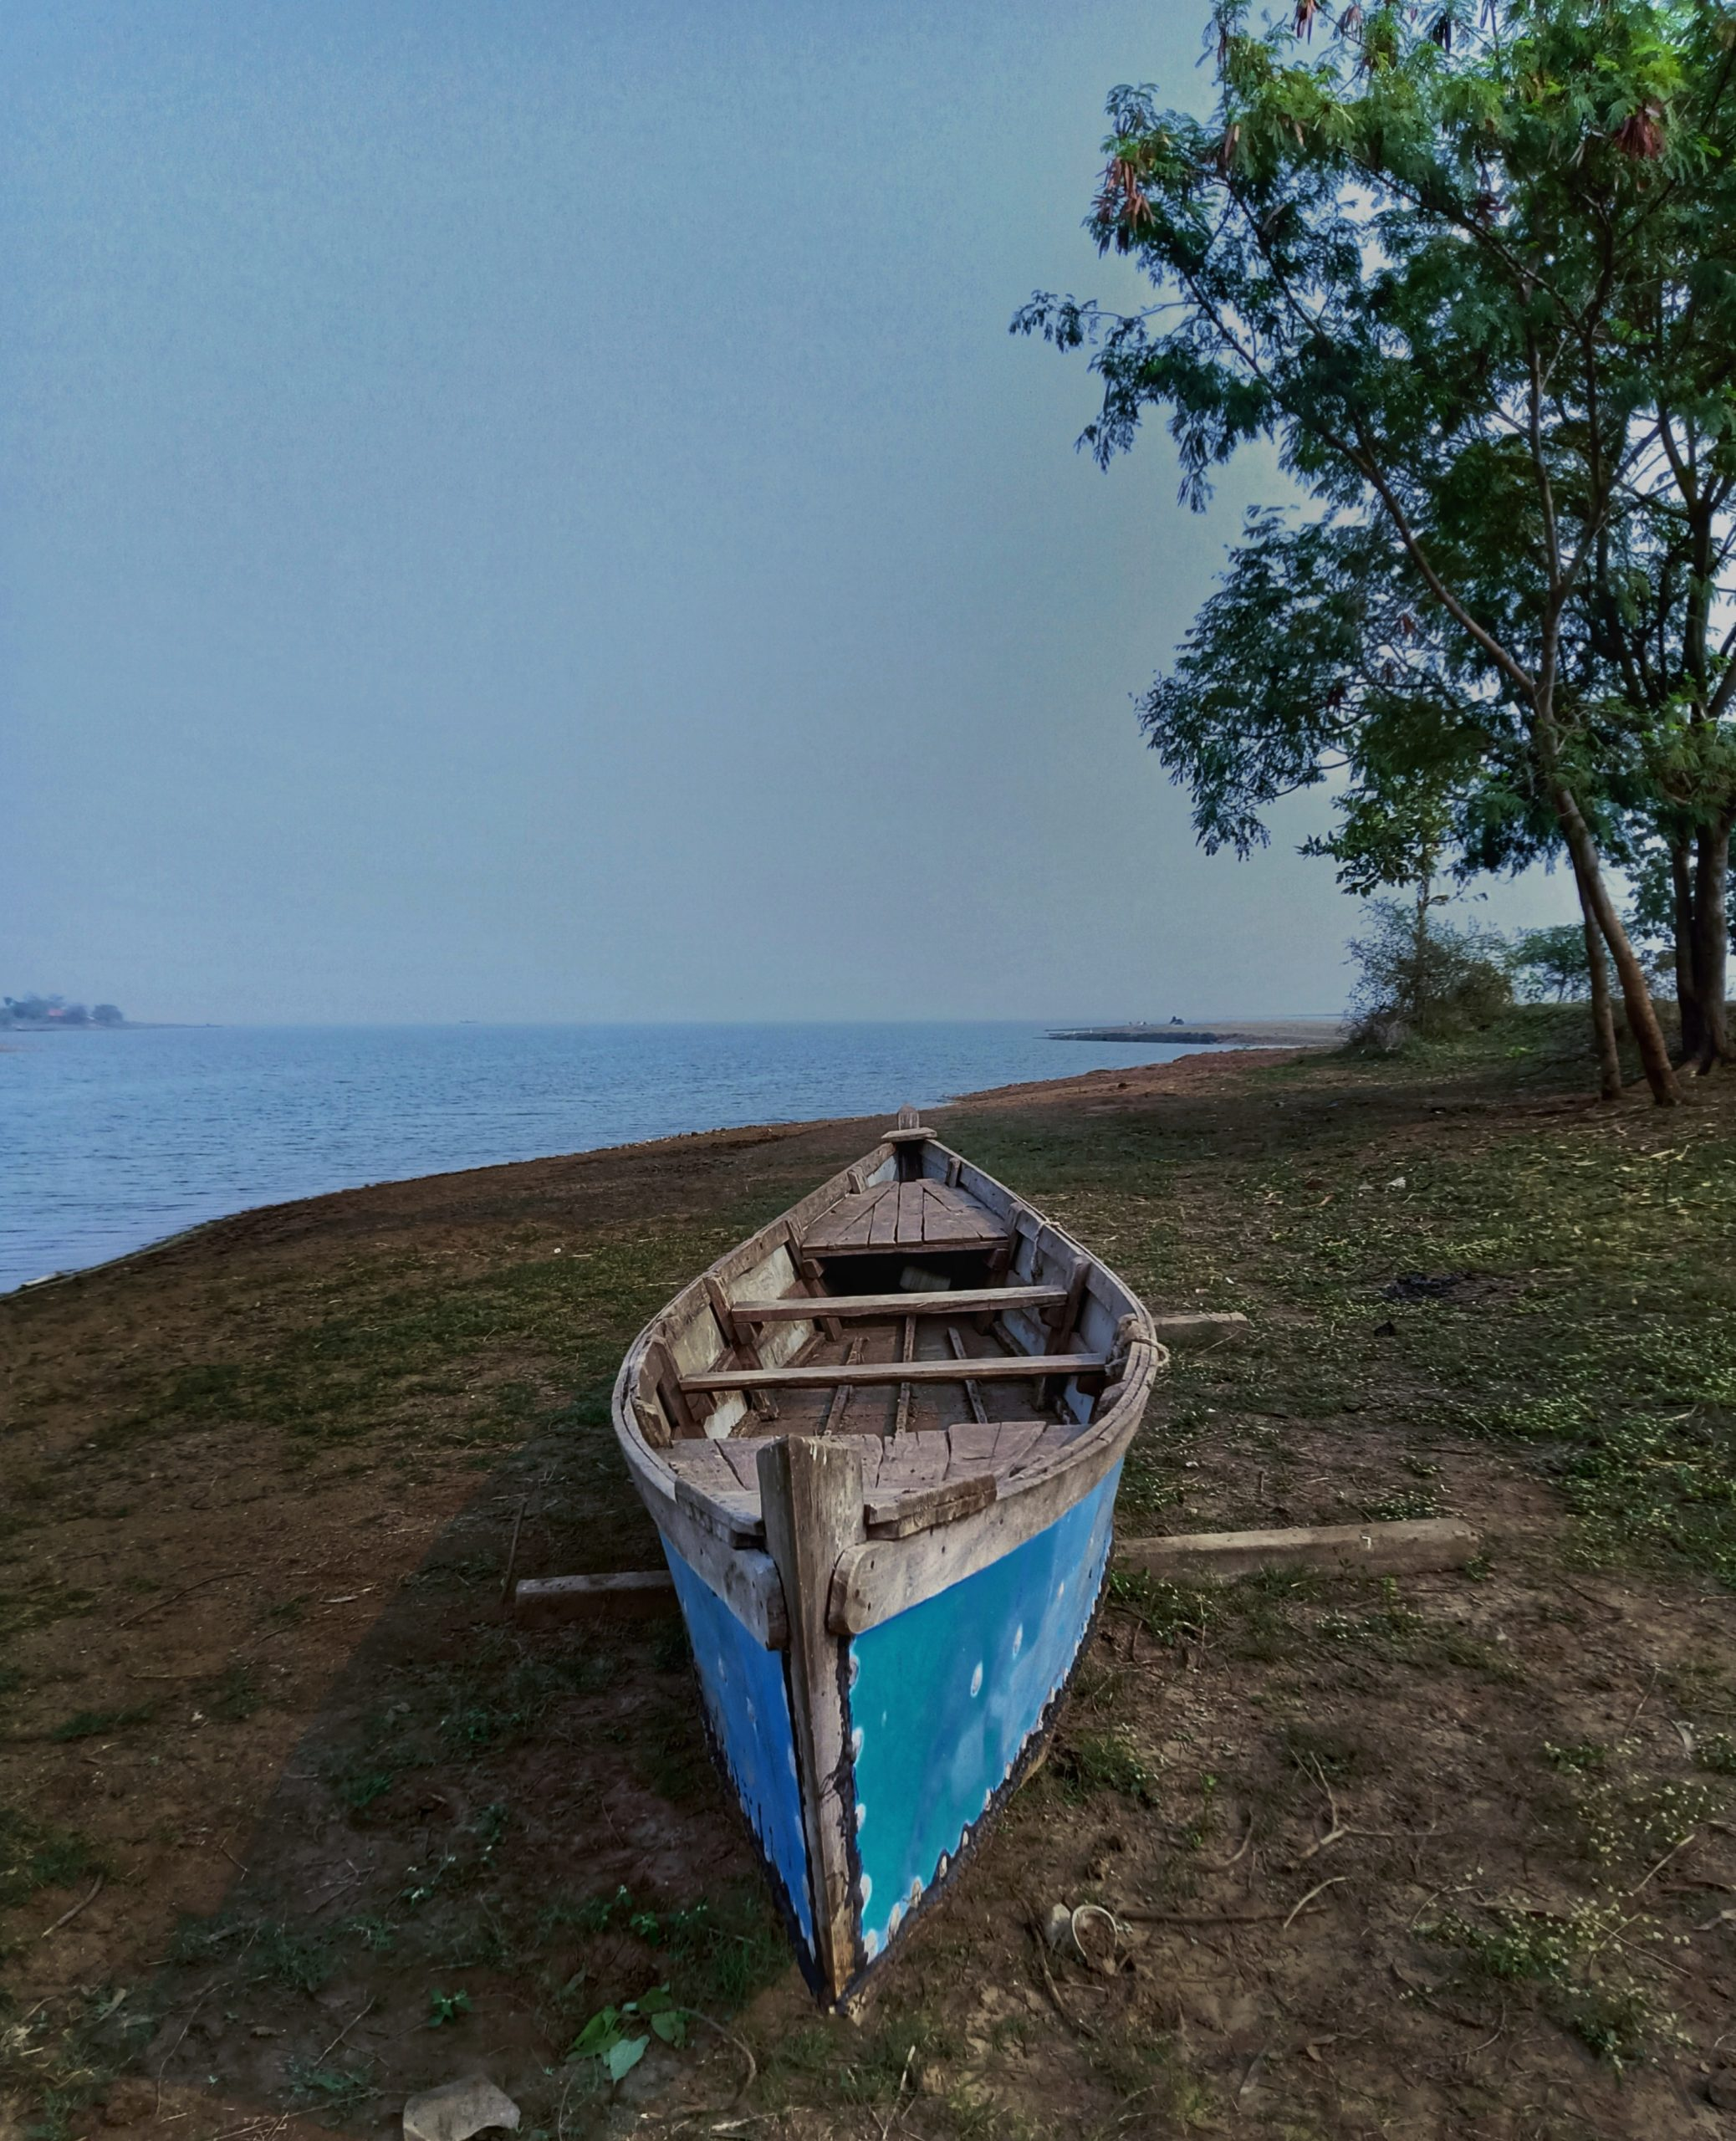 Boat lying at the side of the beach